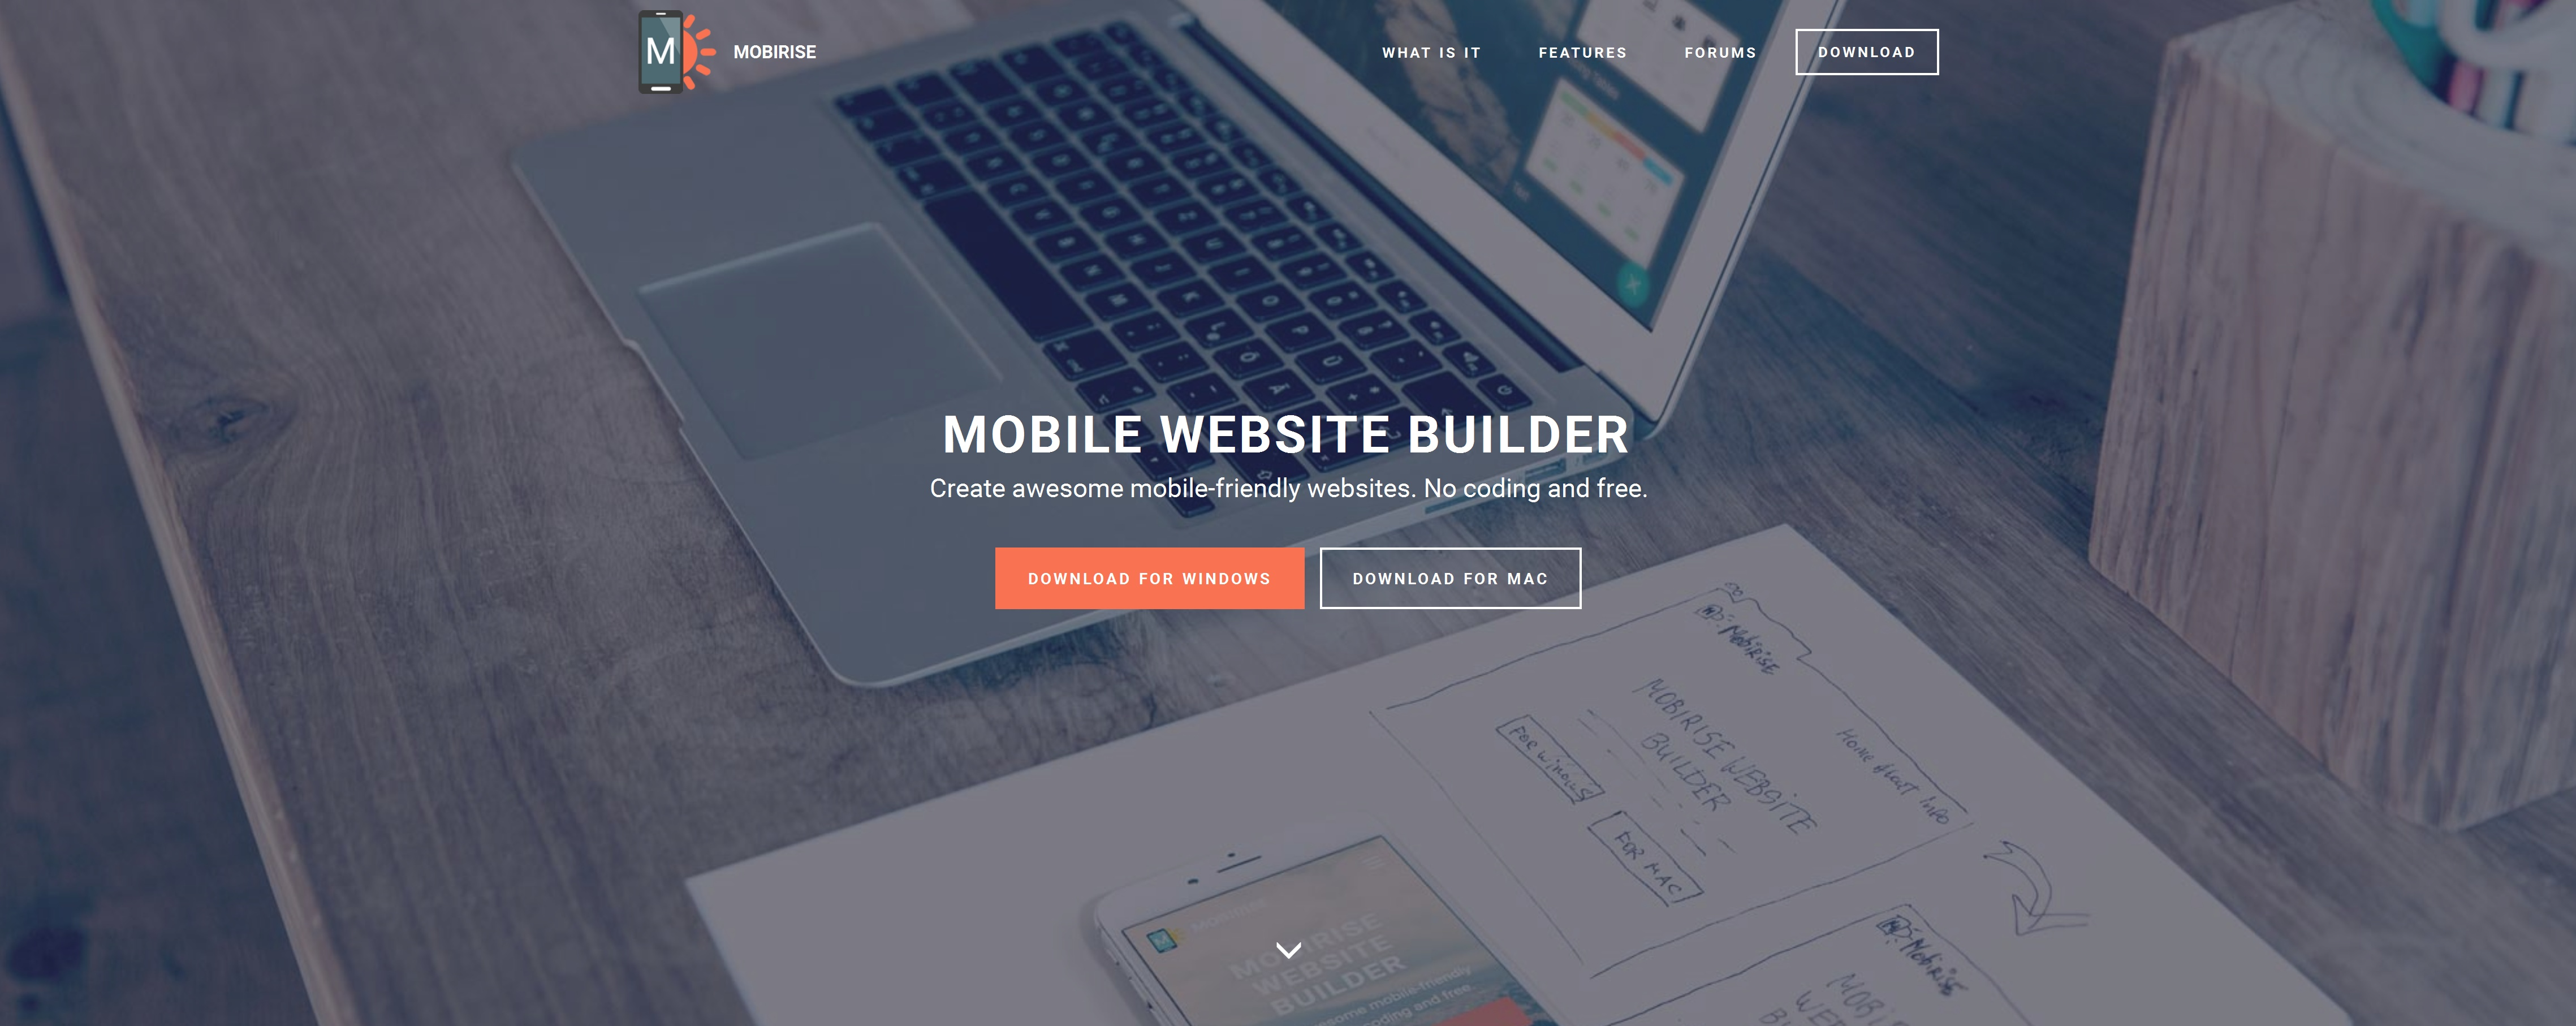 Offline Mobile Website Maker